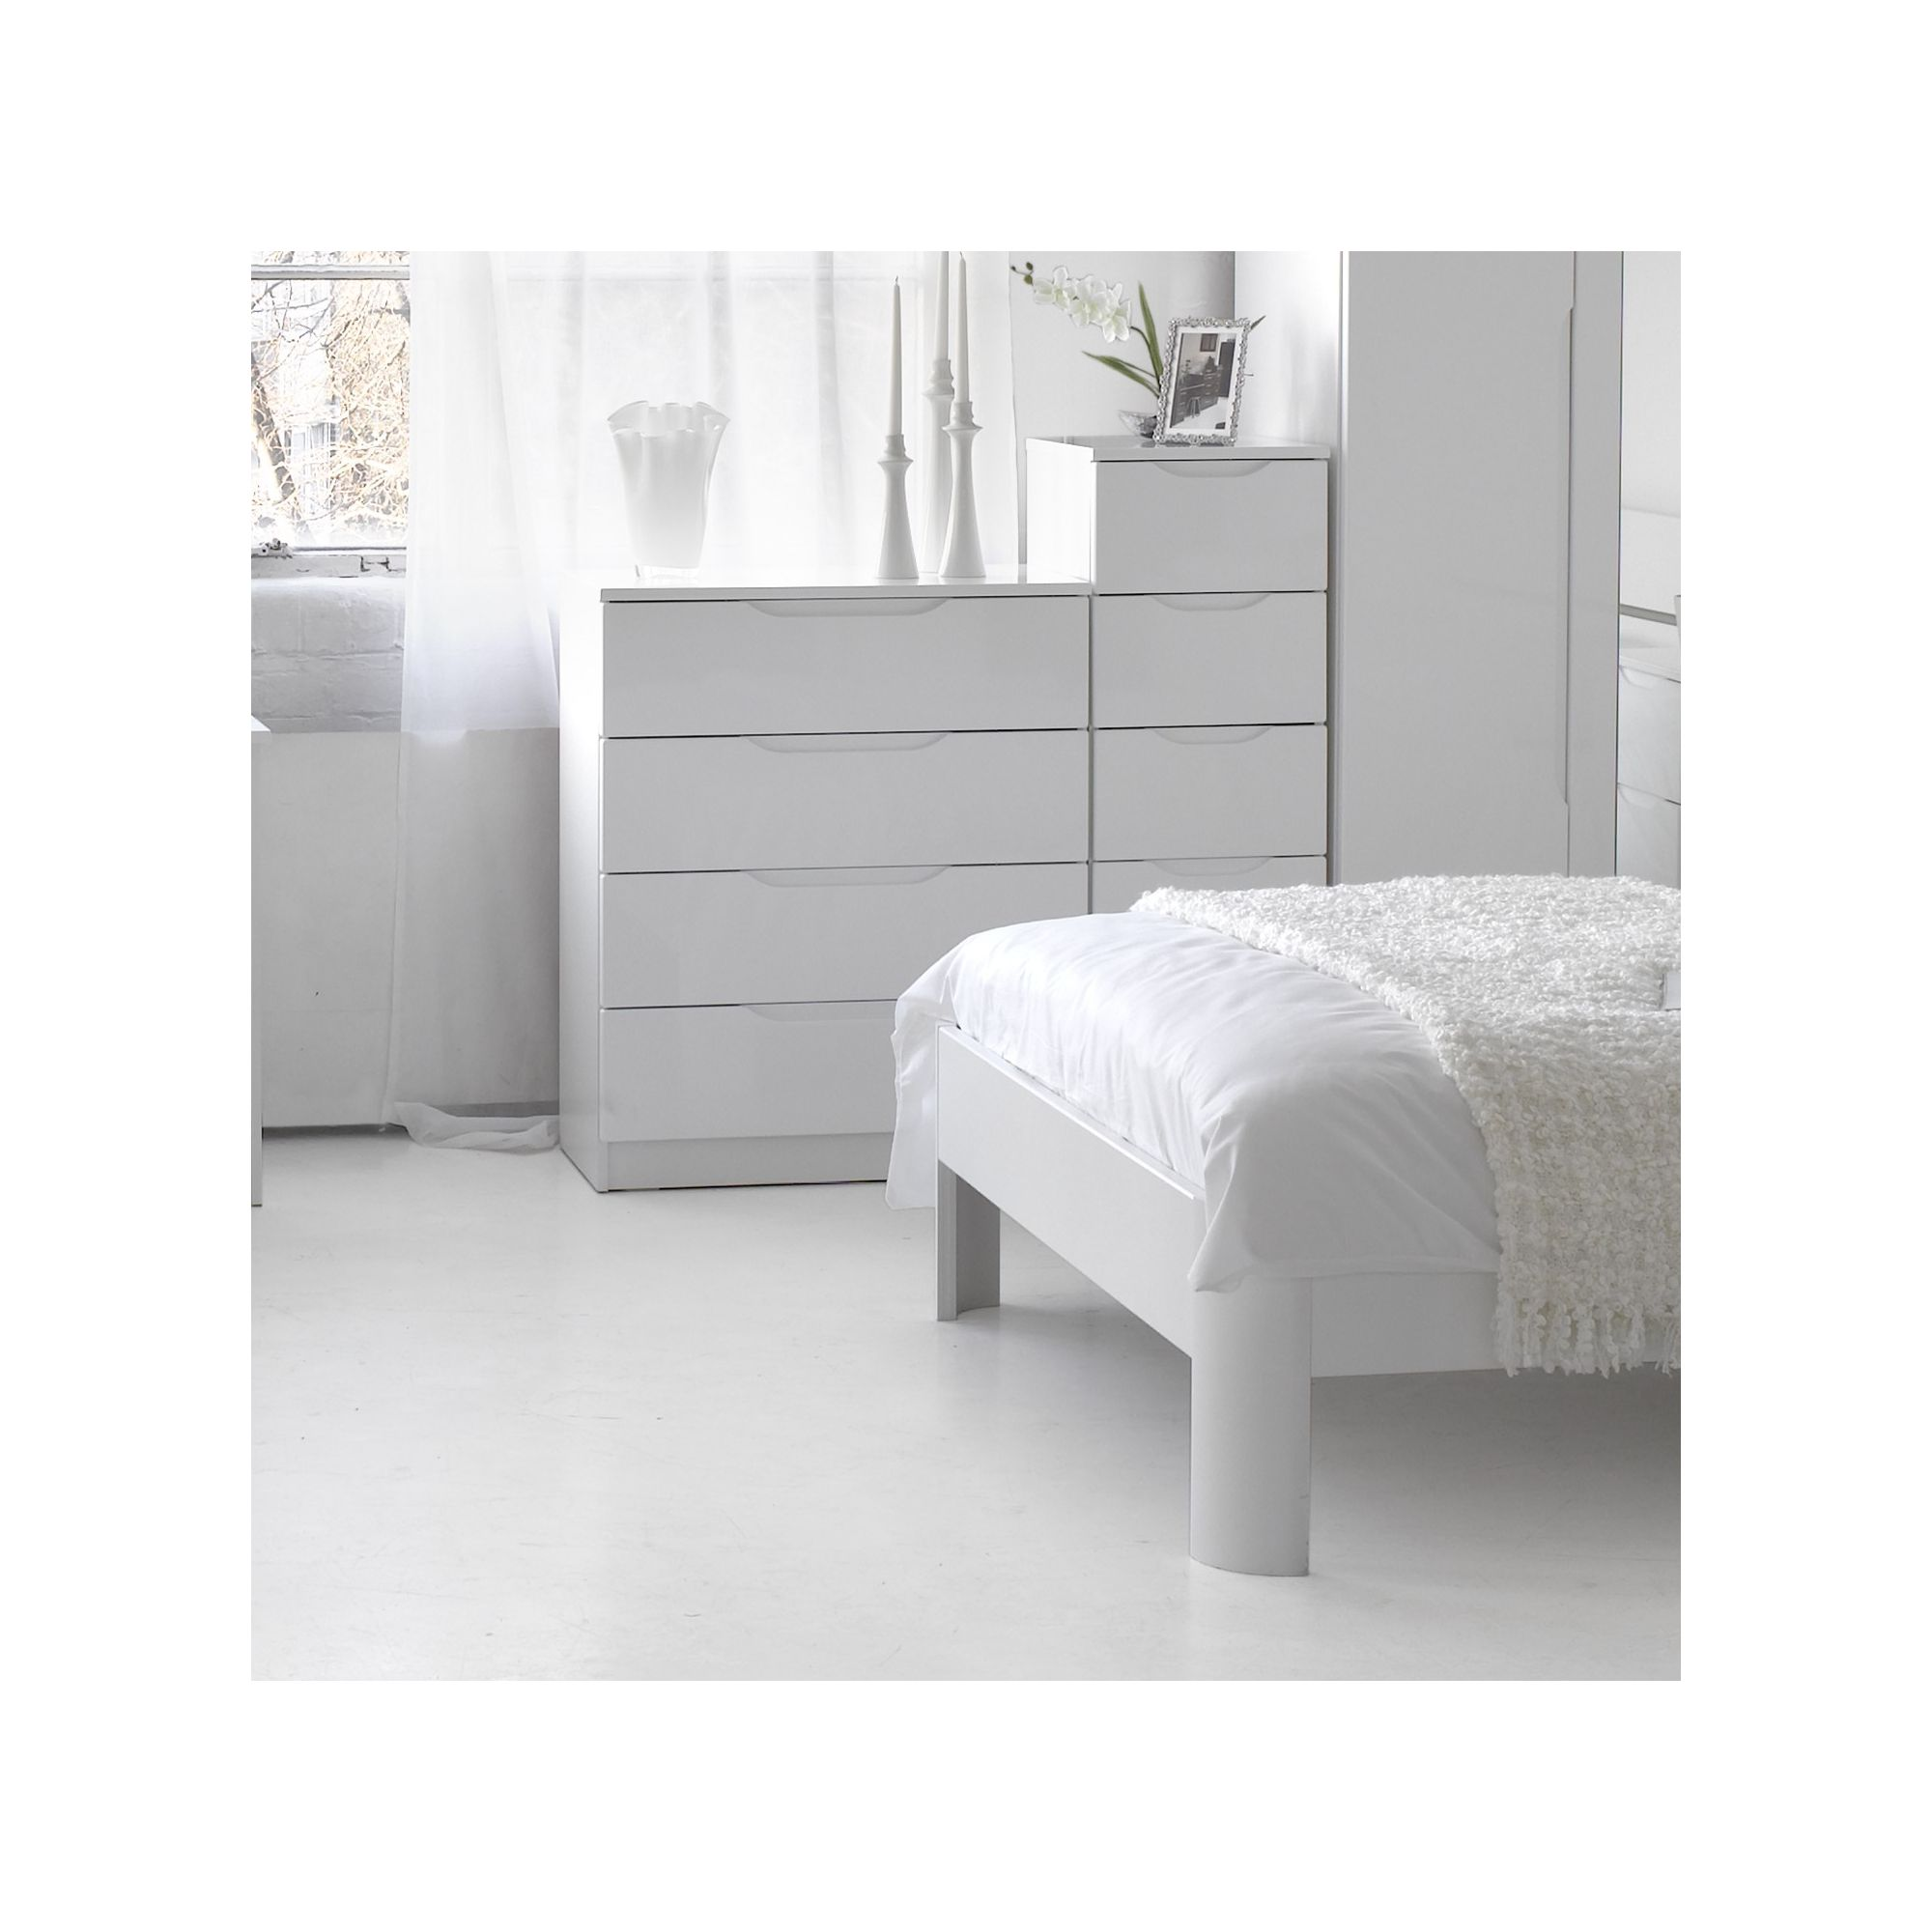 Alto Furniture Visualise Alpine Four Drawer Chest - White at Tesco Direct